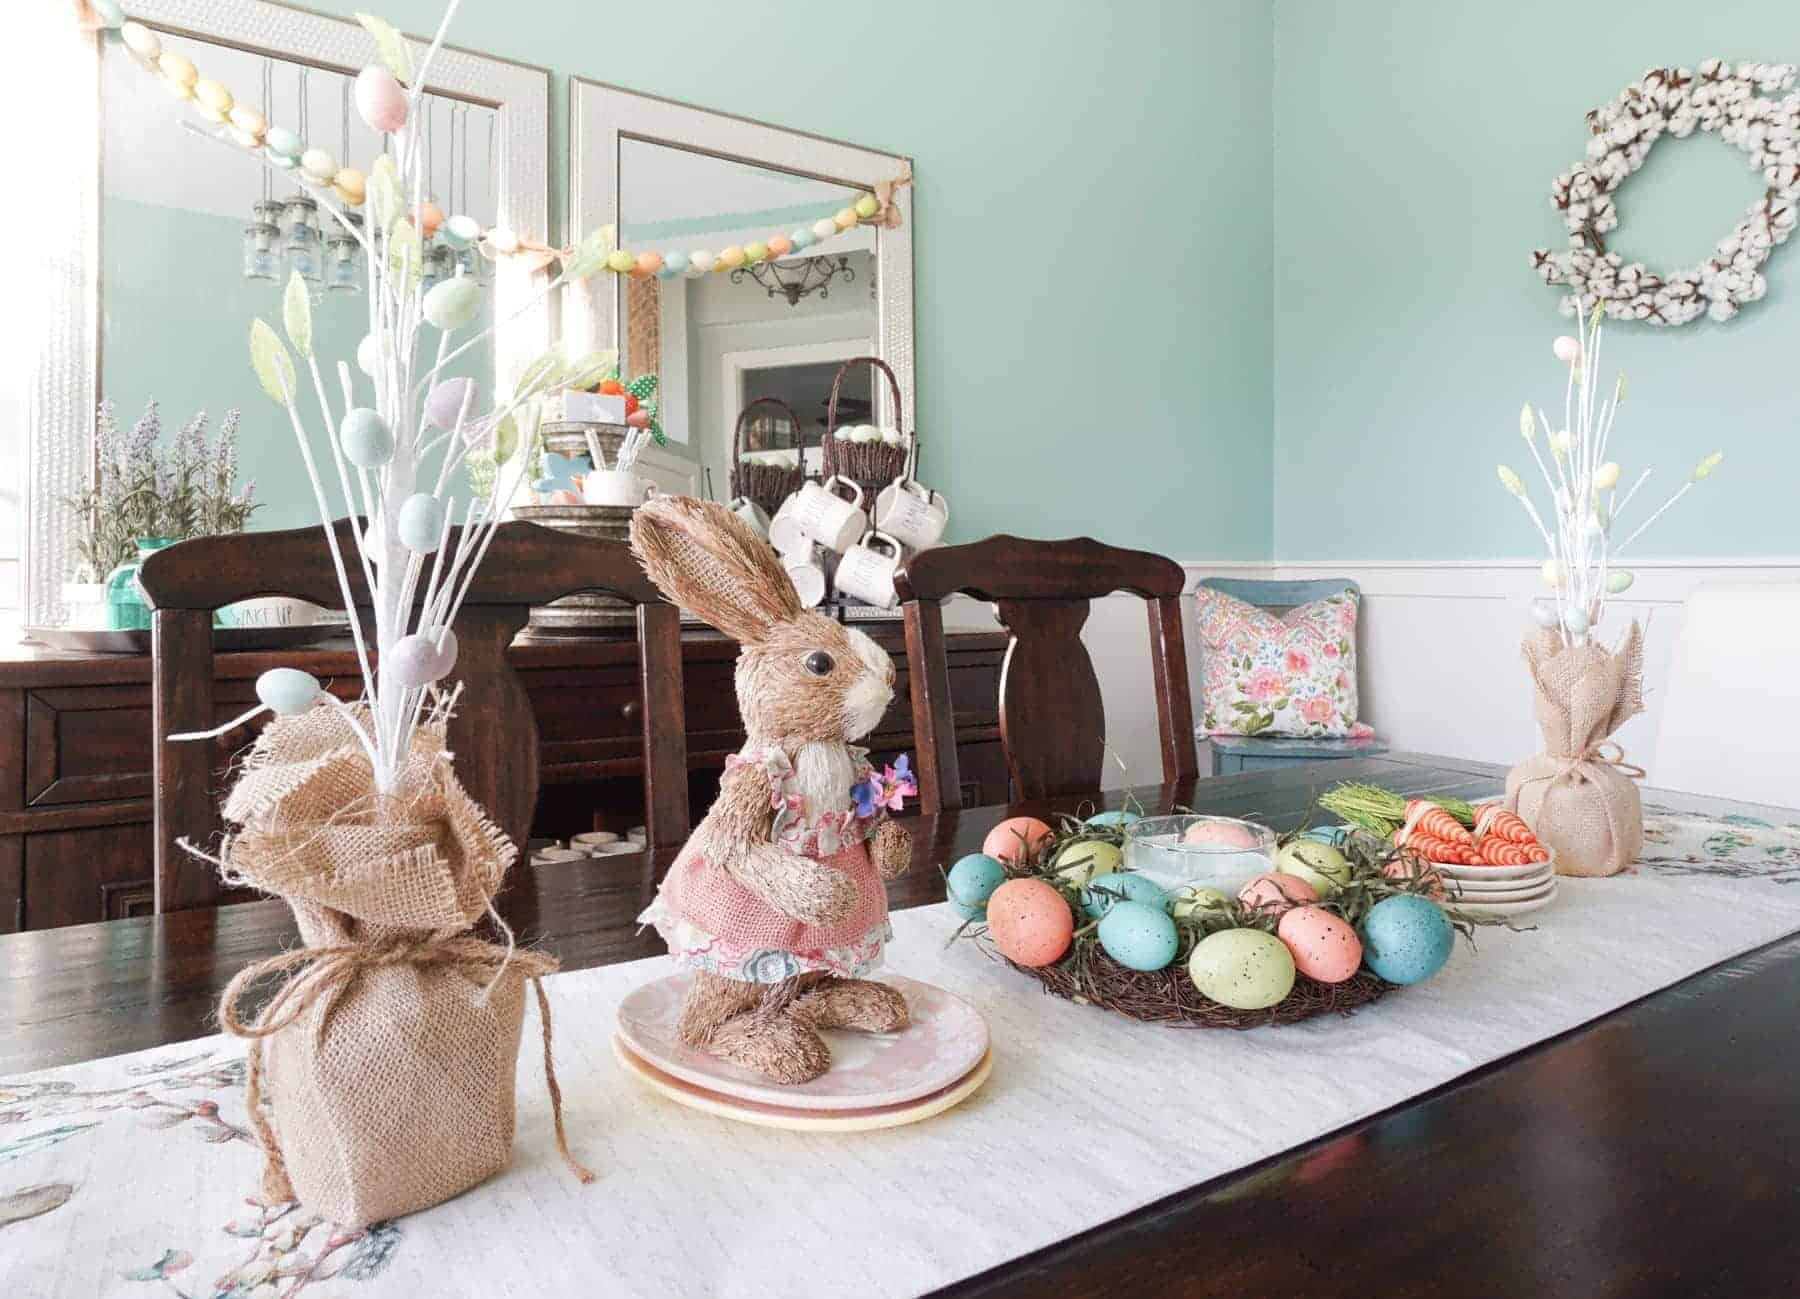 Bunny and Easter Egg Centerpiece on Dining Room Table